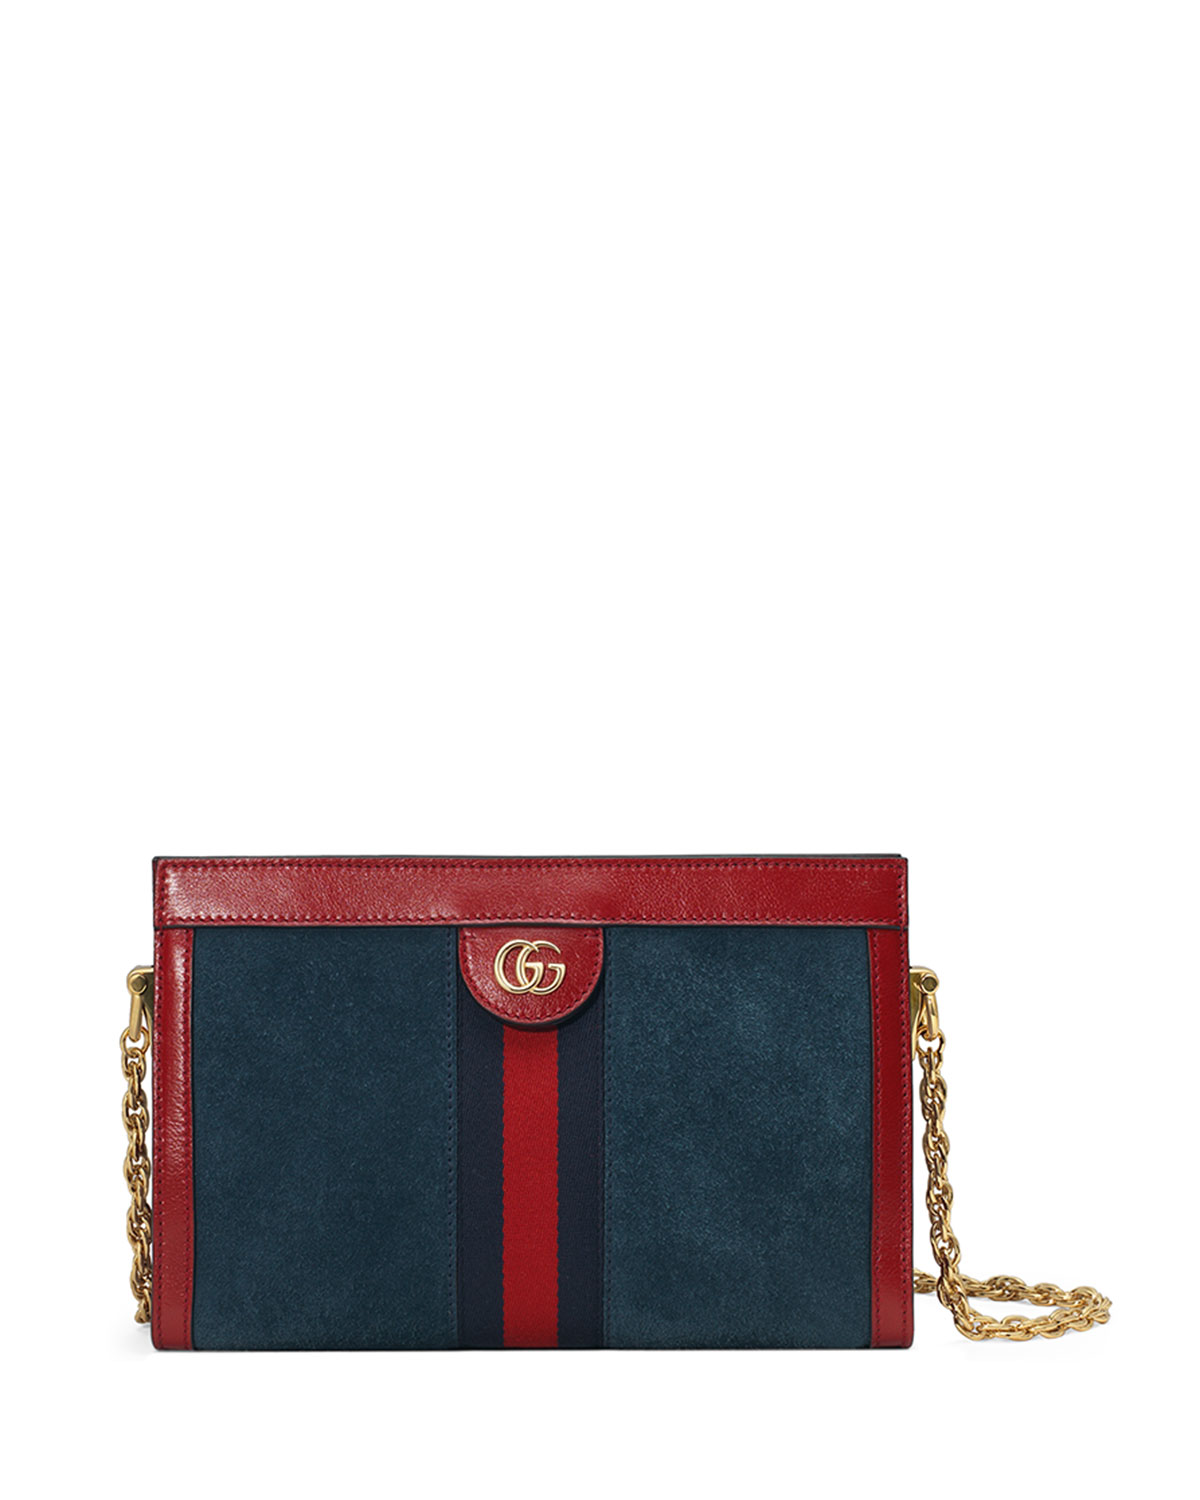 bb09e0500 Gucci Ophidia Small Suede Chain Shoulder Bag | Neiman Marcus